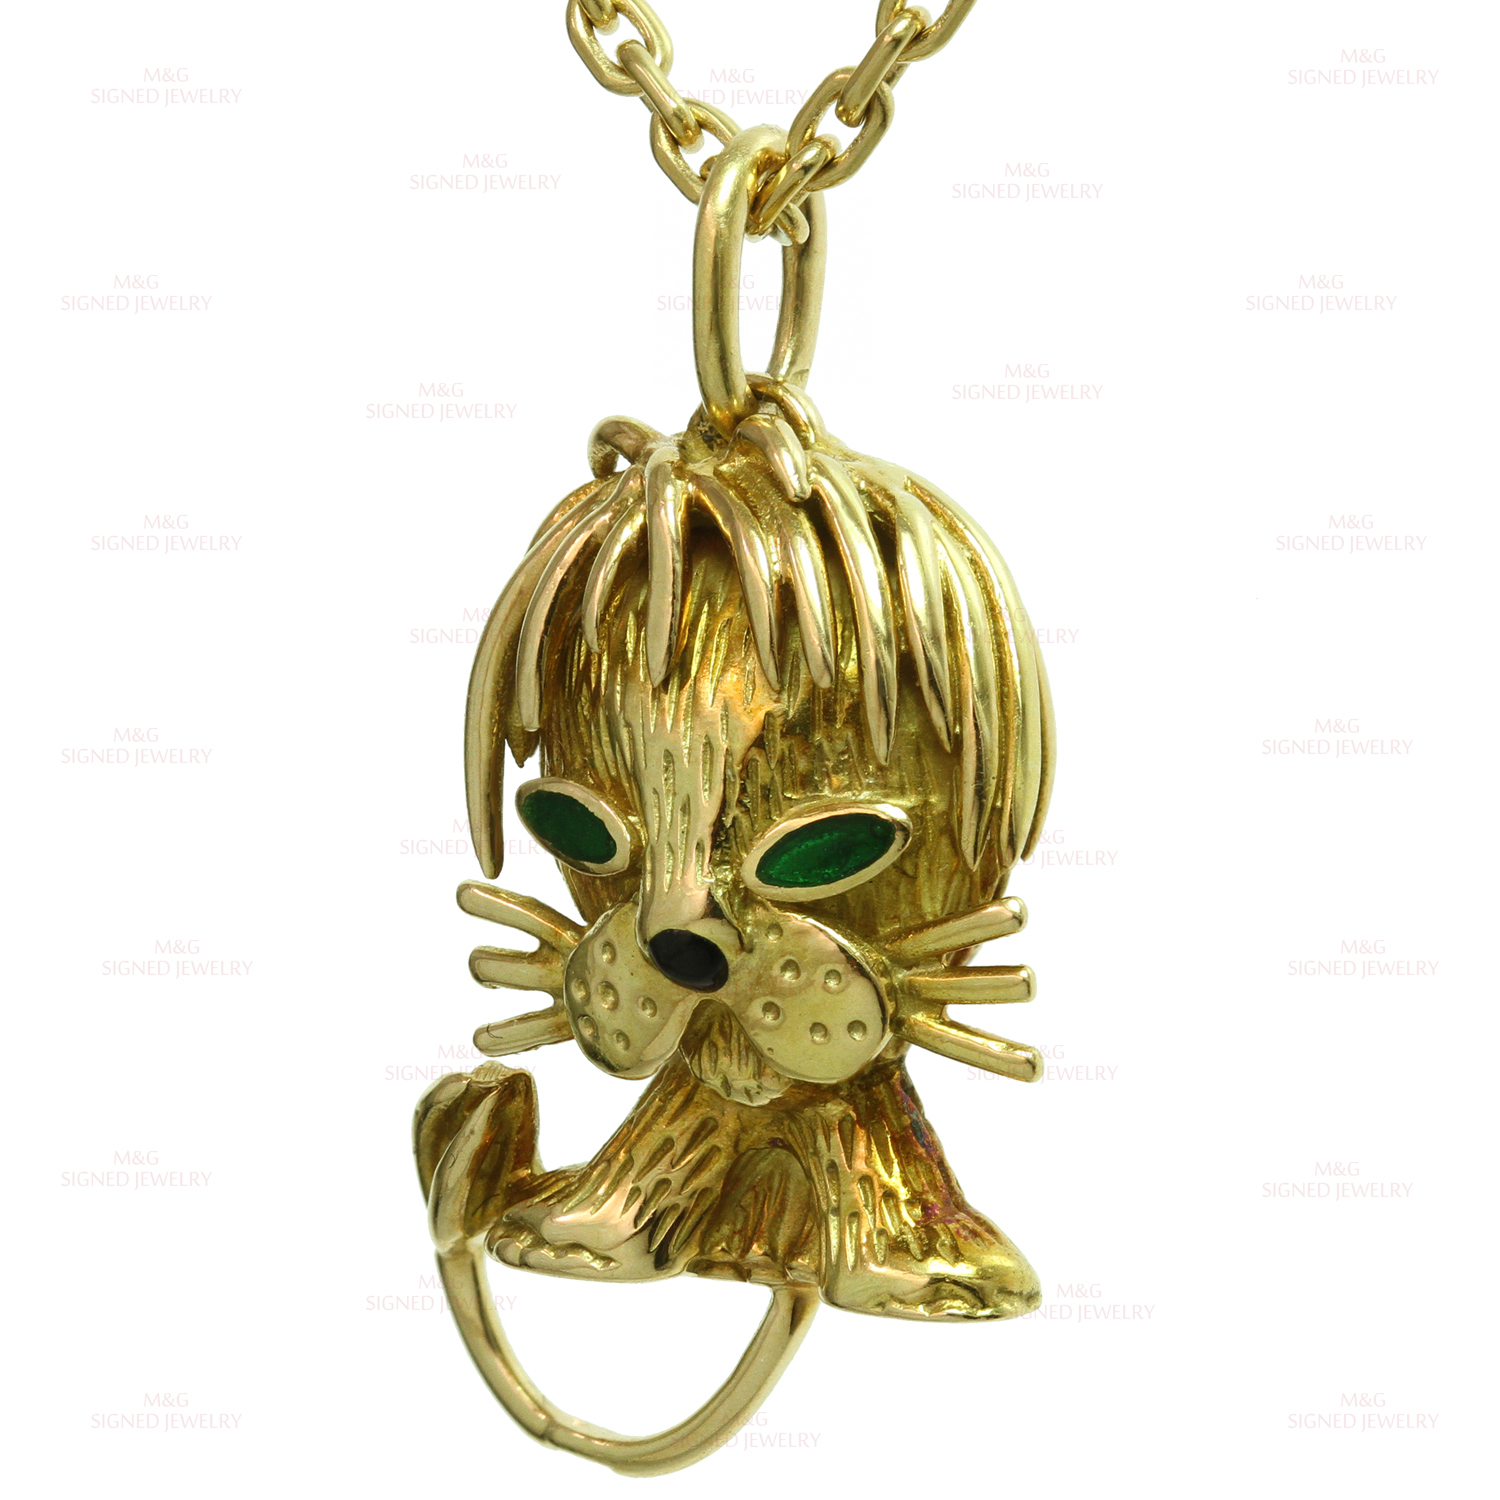 cleef van online necklace s lion arpels christies christie pendant jewels